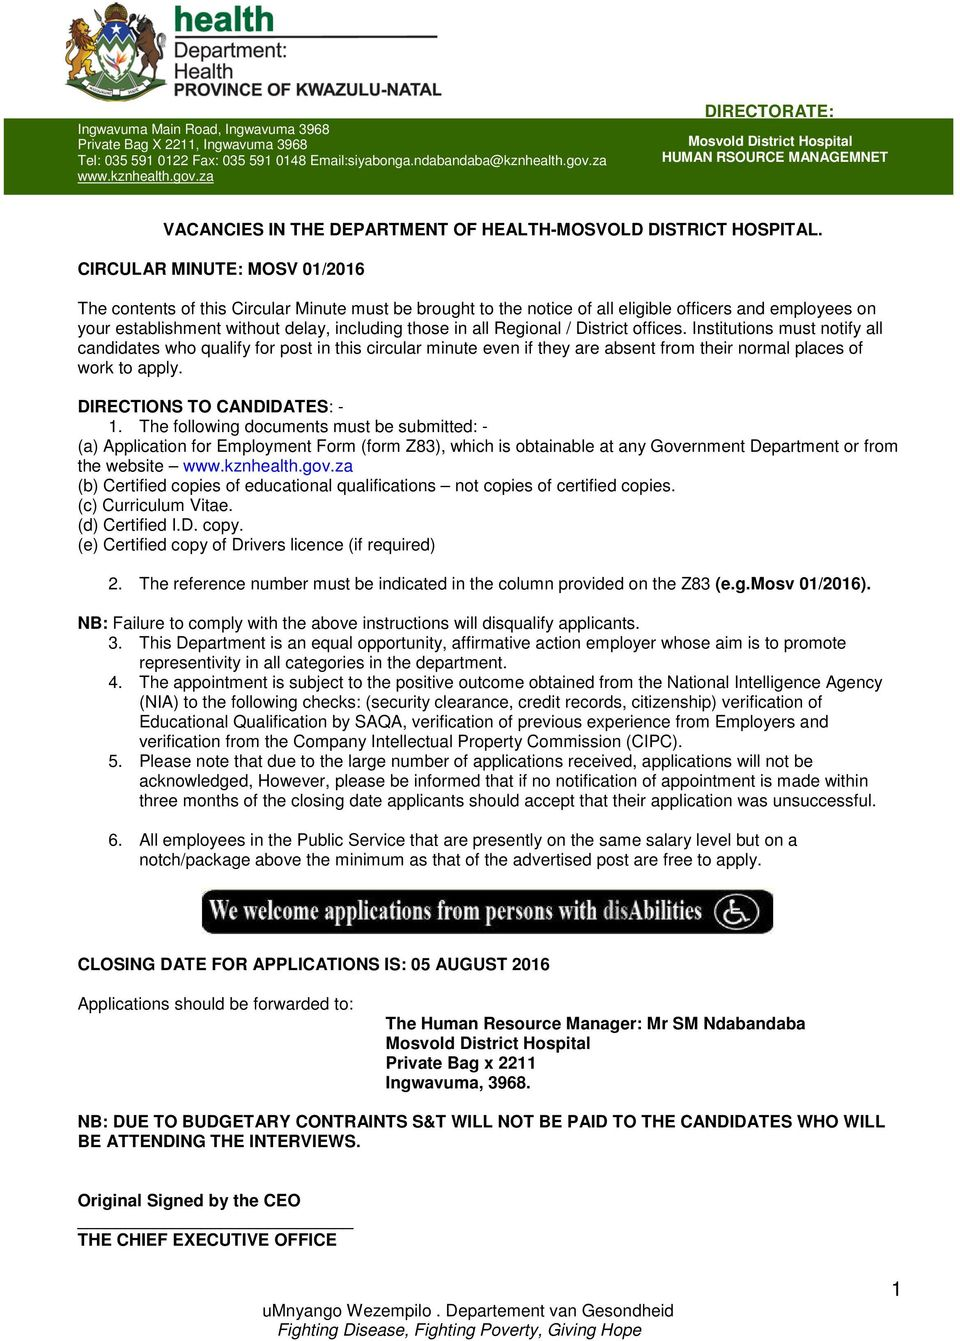 VACANCIES IN THE DEPARTMENT OF HEALTH-MOSVOLD DISTRICT